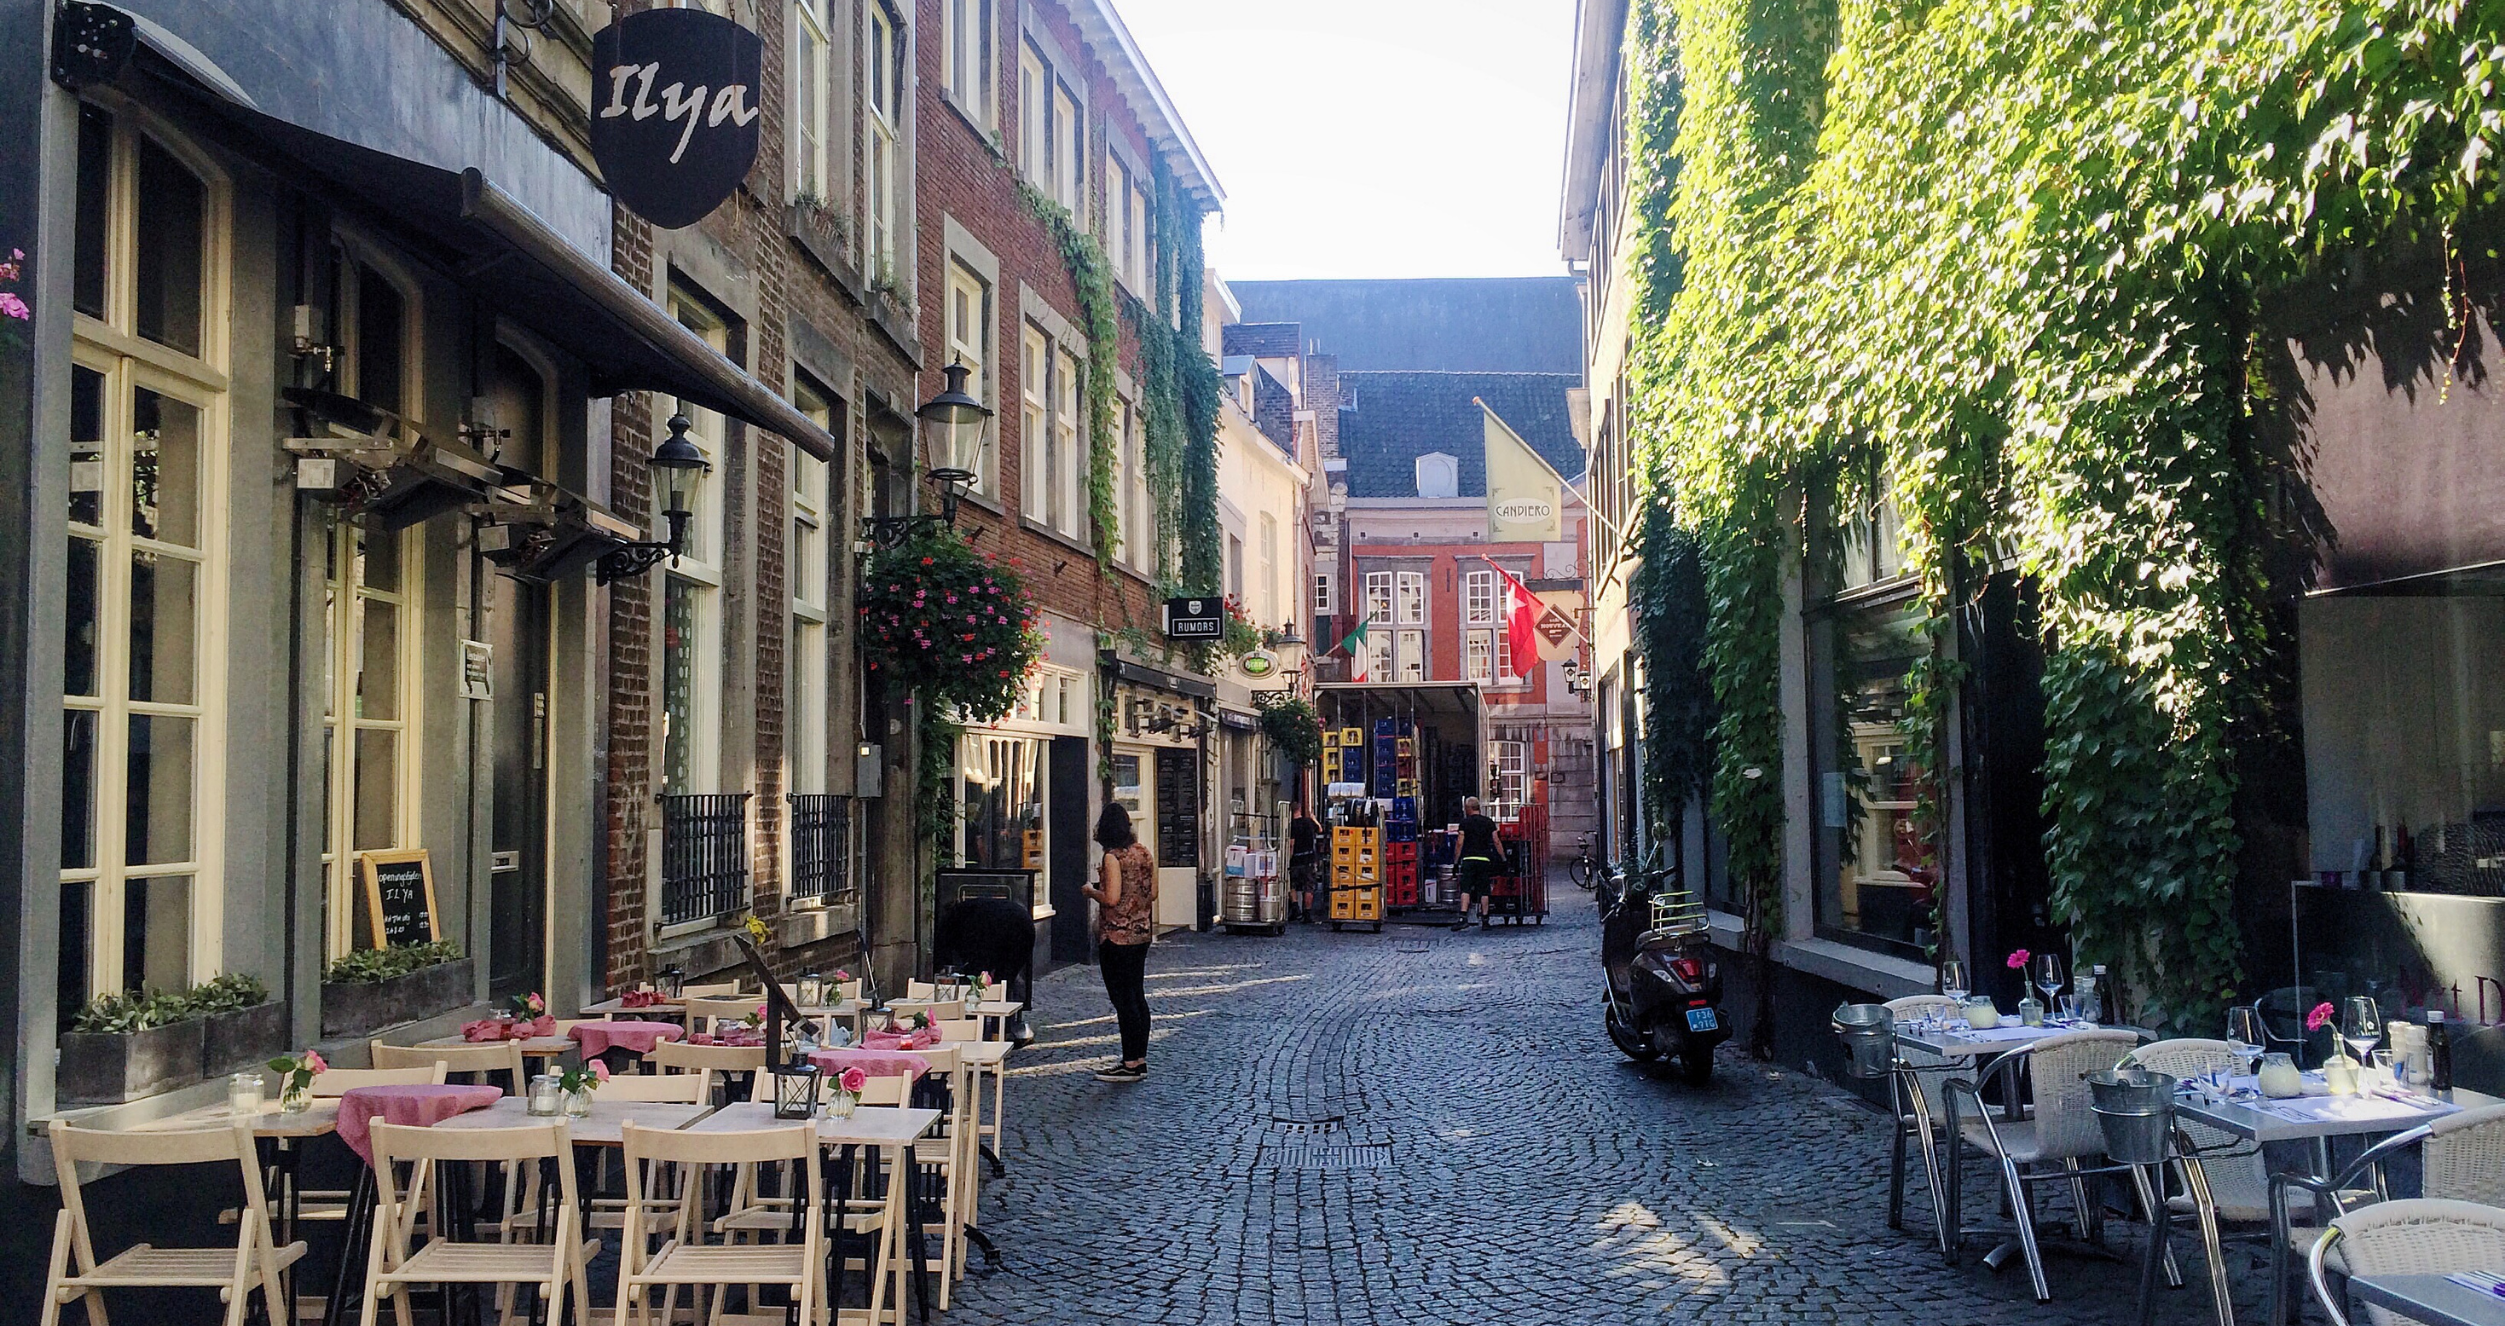 A narrow street in Maastricht